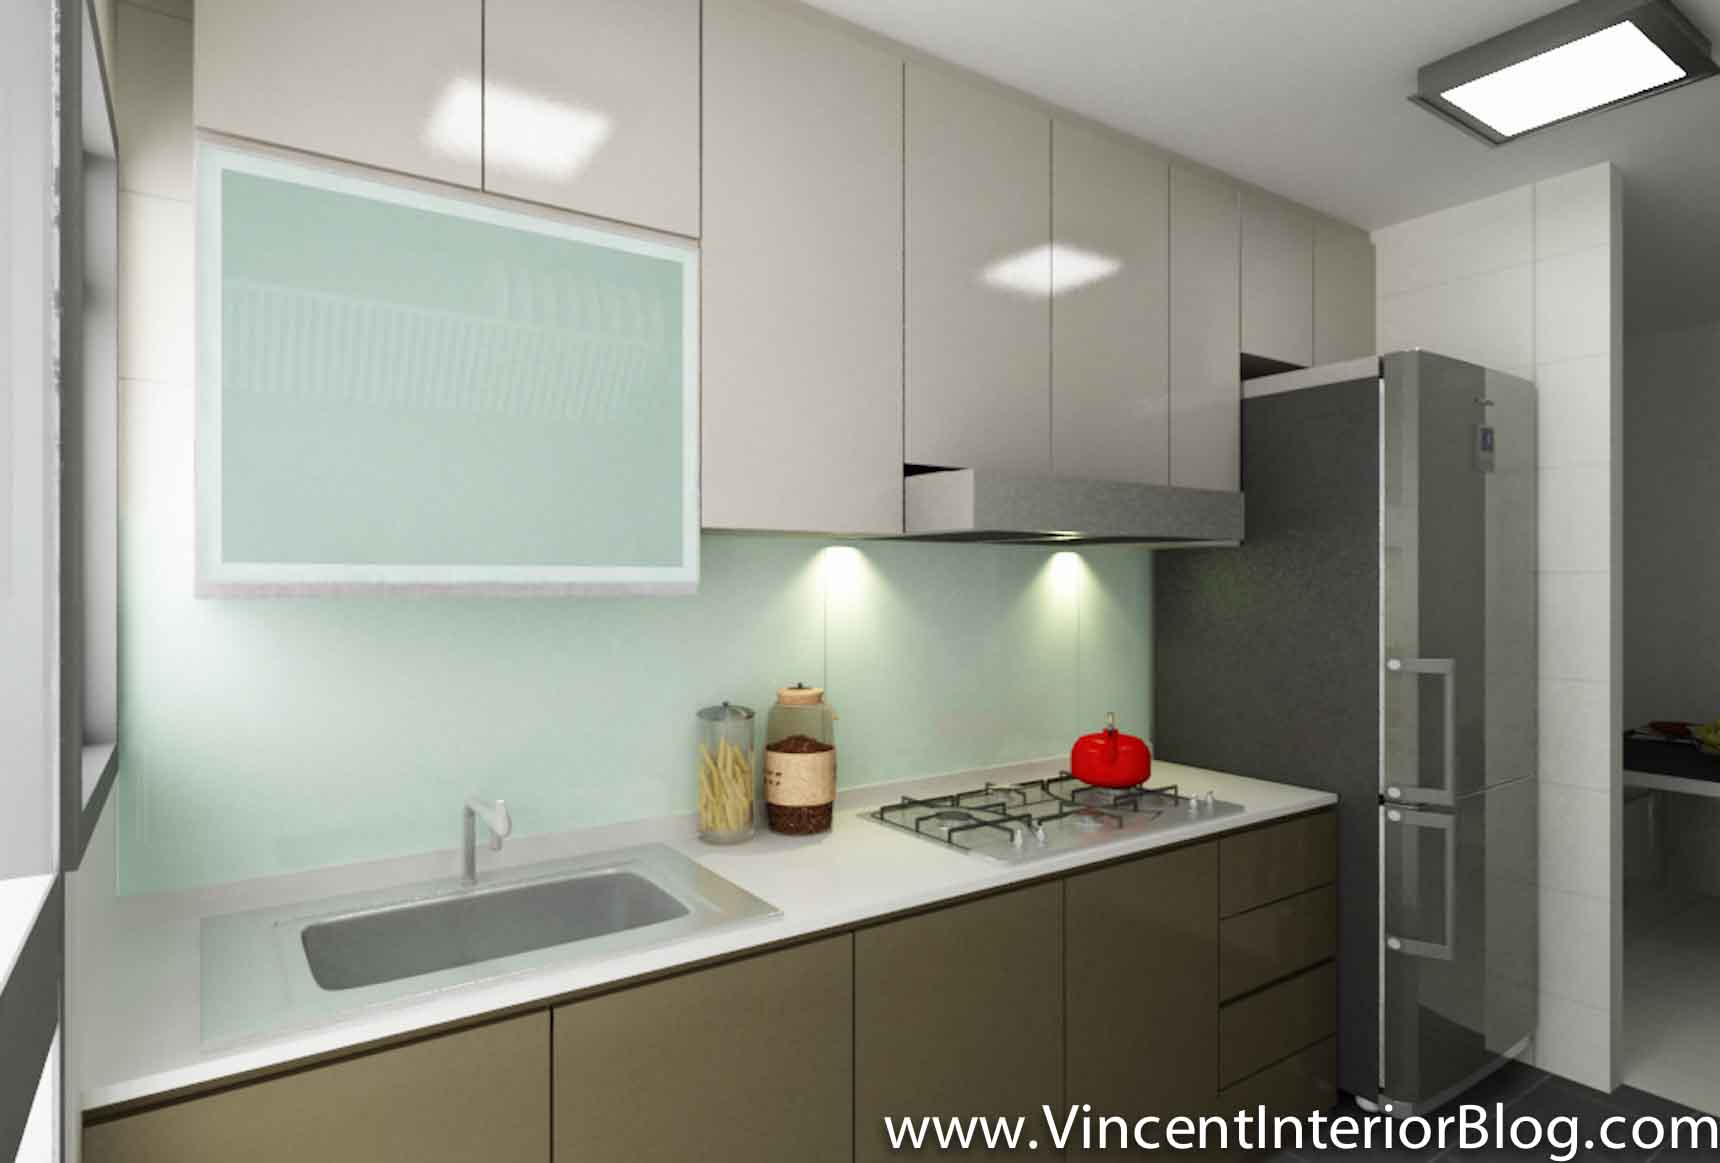 Bto 3 room hdb renovation by interior designer ben ng part 5 project completed vincent Kitchen door design hdb